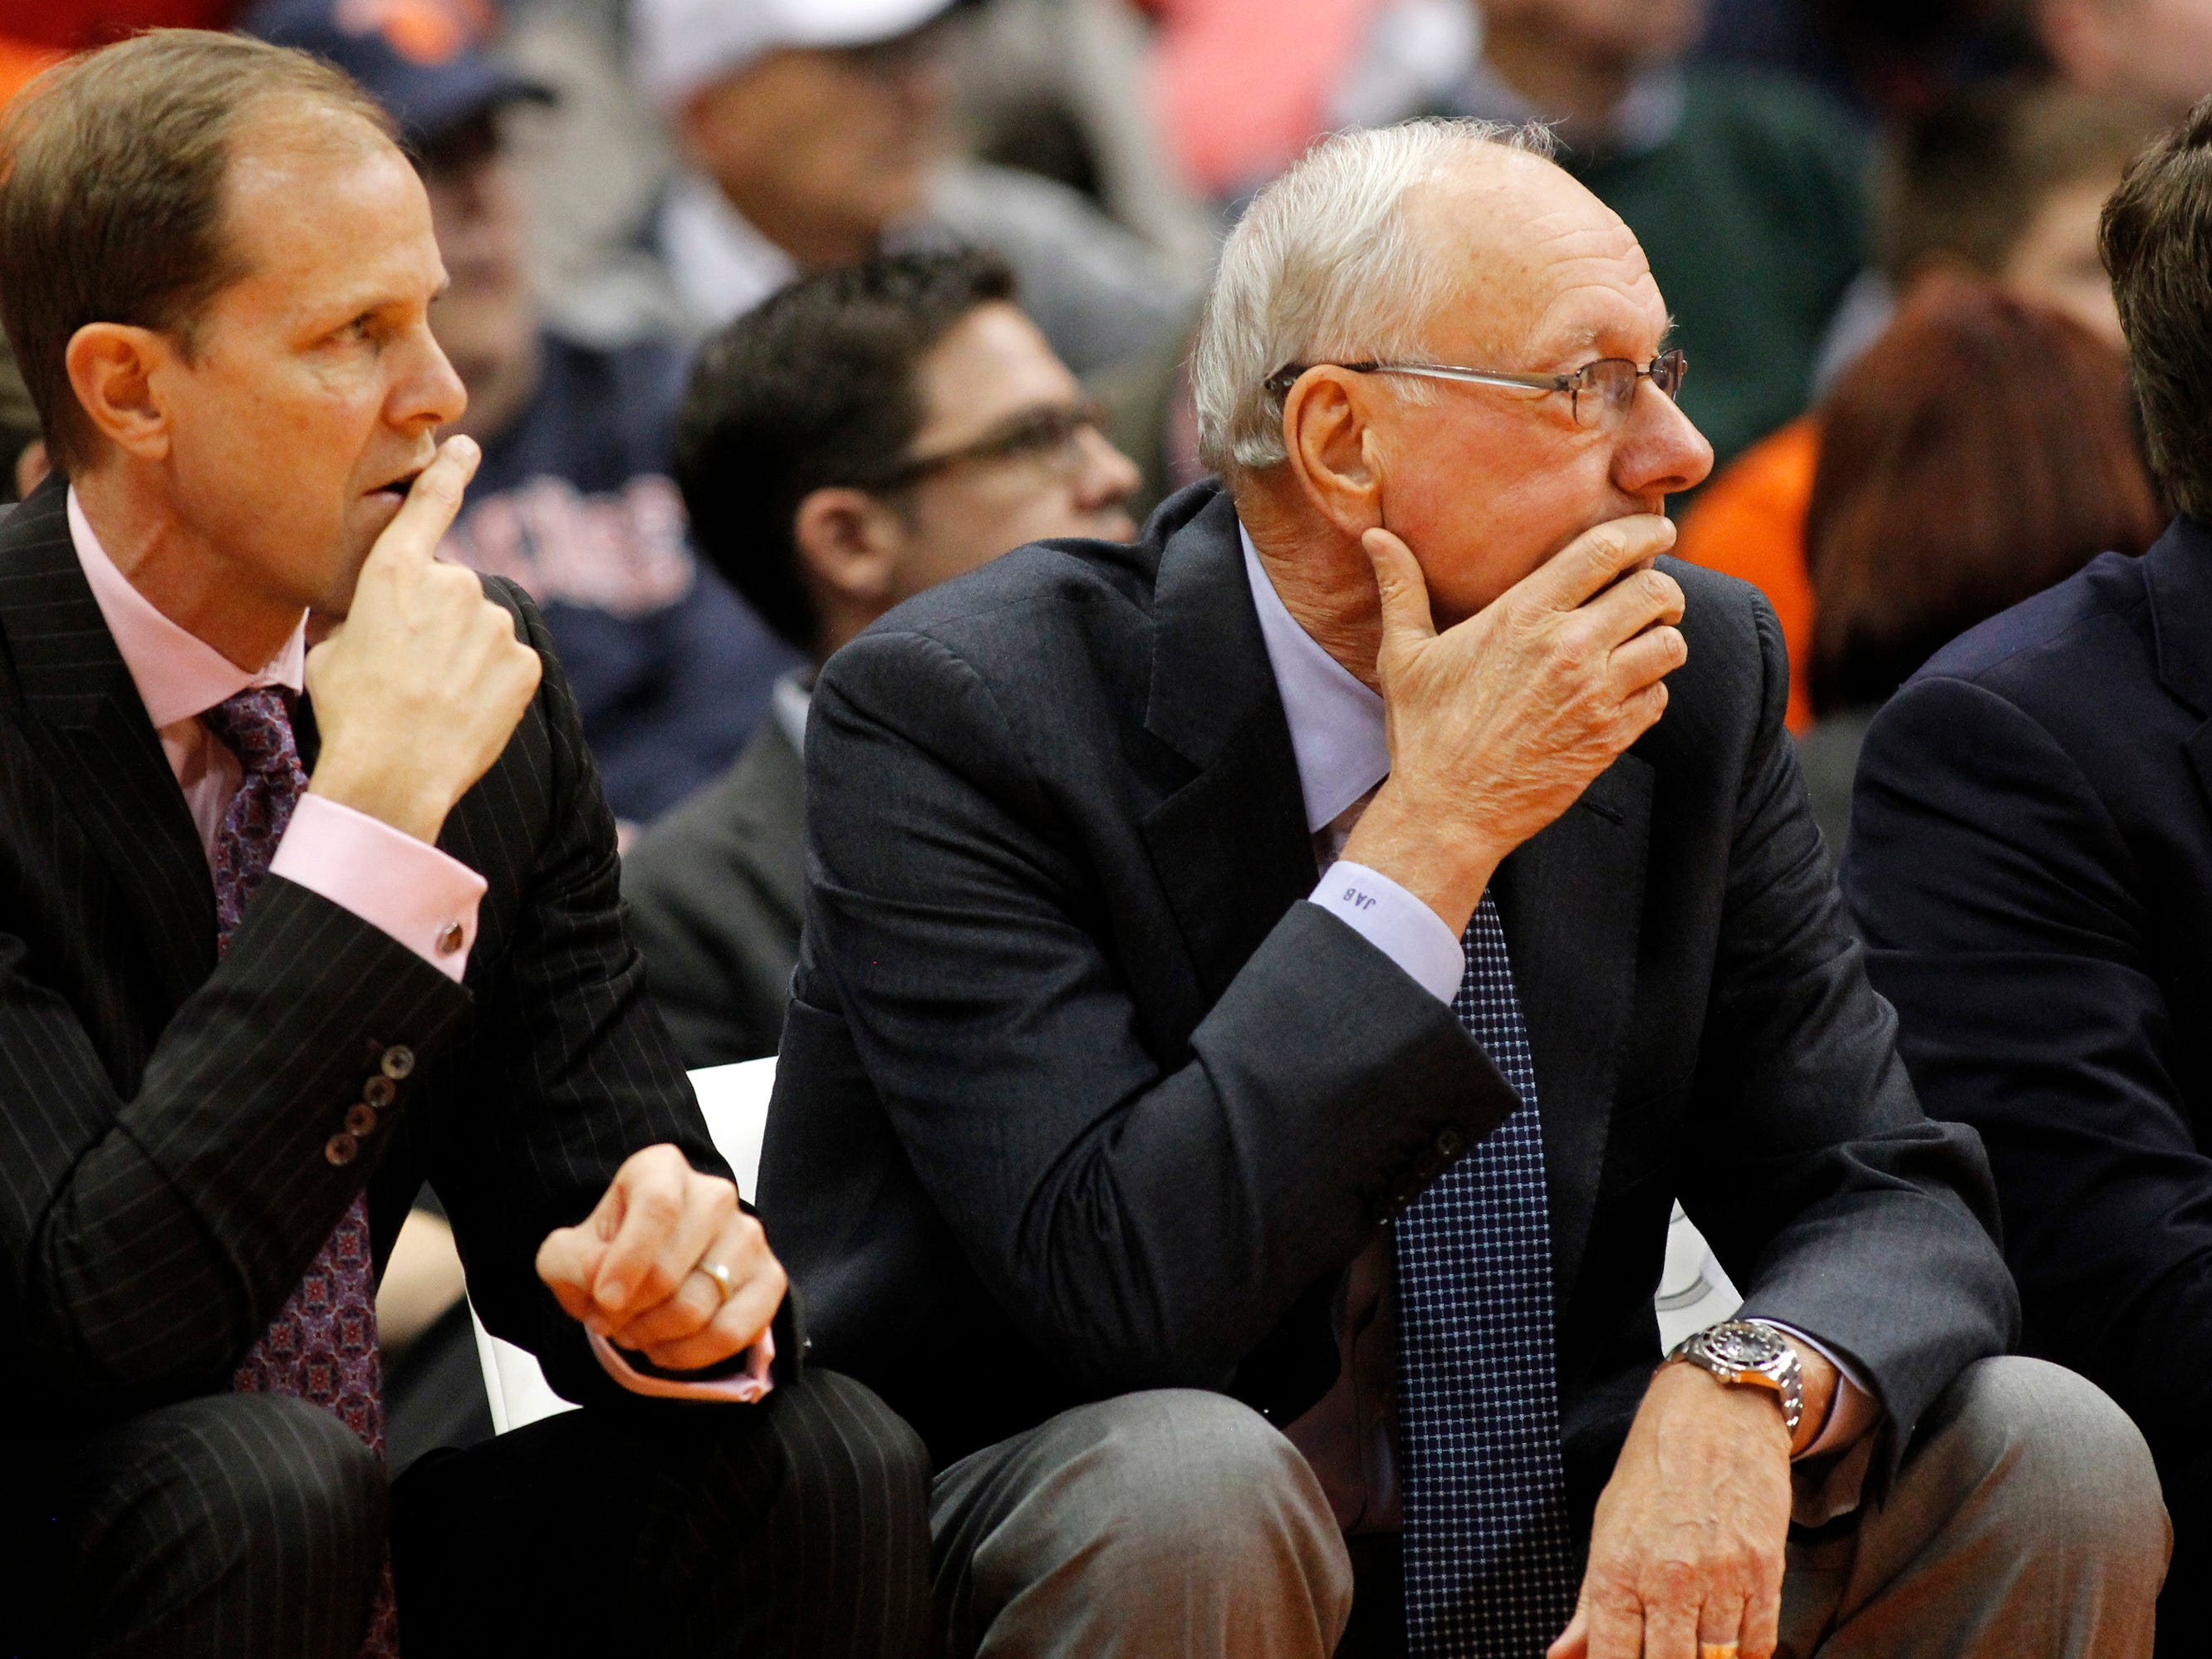 2015: Syracuse's assistant coach Mike Hopkins, left, and Syracuse head coach Jim Boeheim, right, watch the action from the bench in the first half of an NCAA college basketball game against Elon in Syracuse, N.Y., Saturday, Nov. 21, 2015. (AP Photo/Nick Lisi)